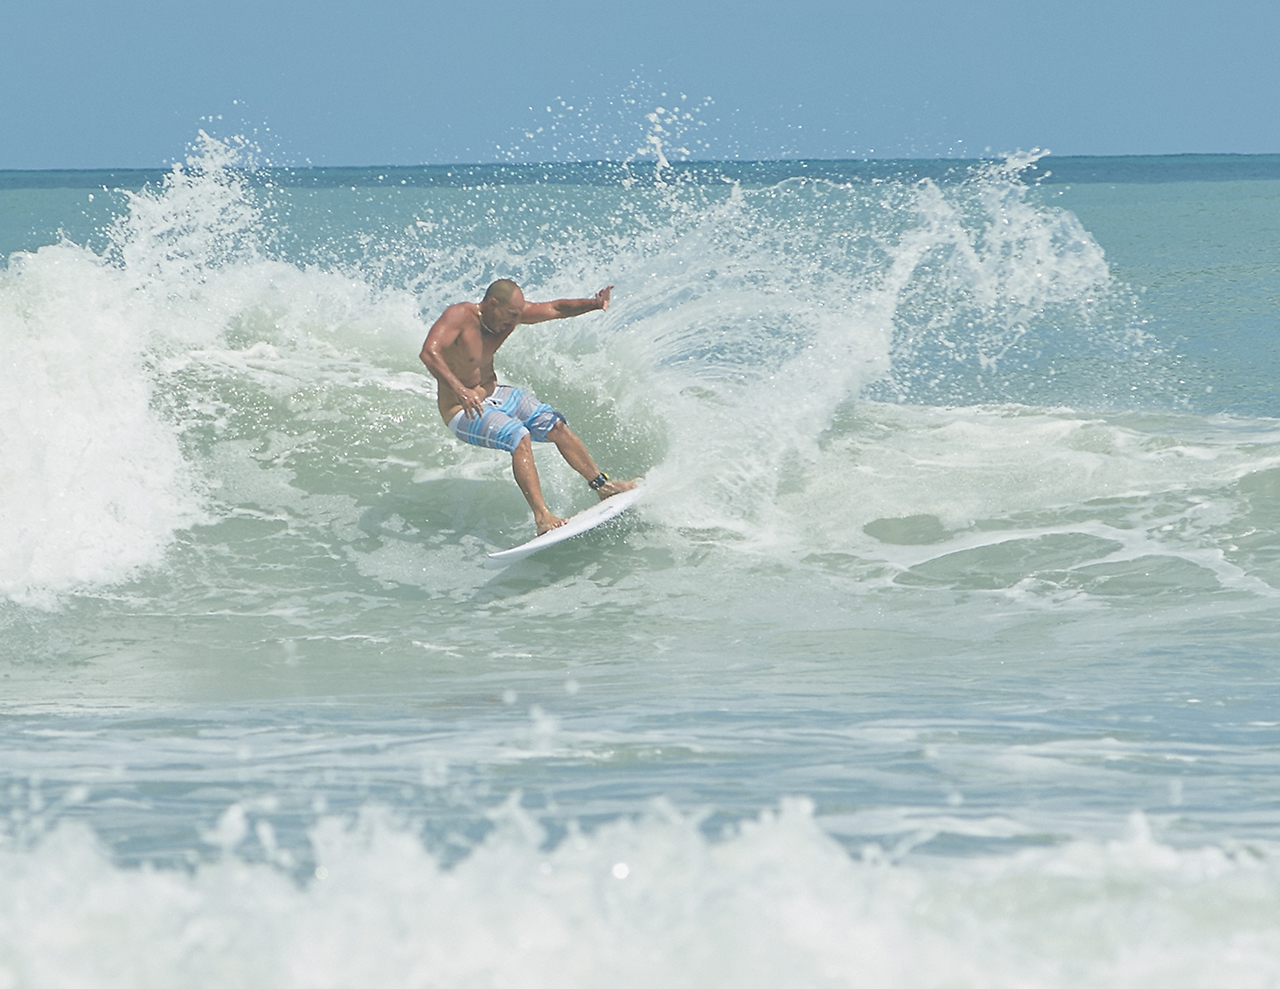 north-jensen-beach-florida-WordInTown-Jay-Romero-photgraphy-surfers-road-trip-11